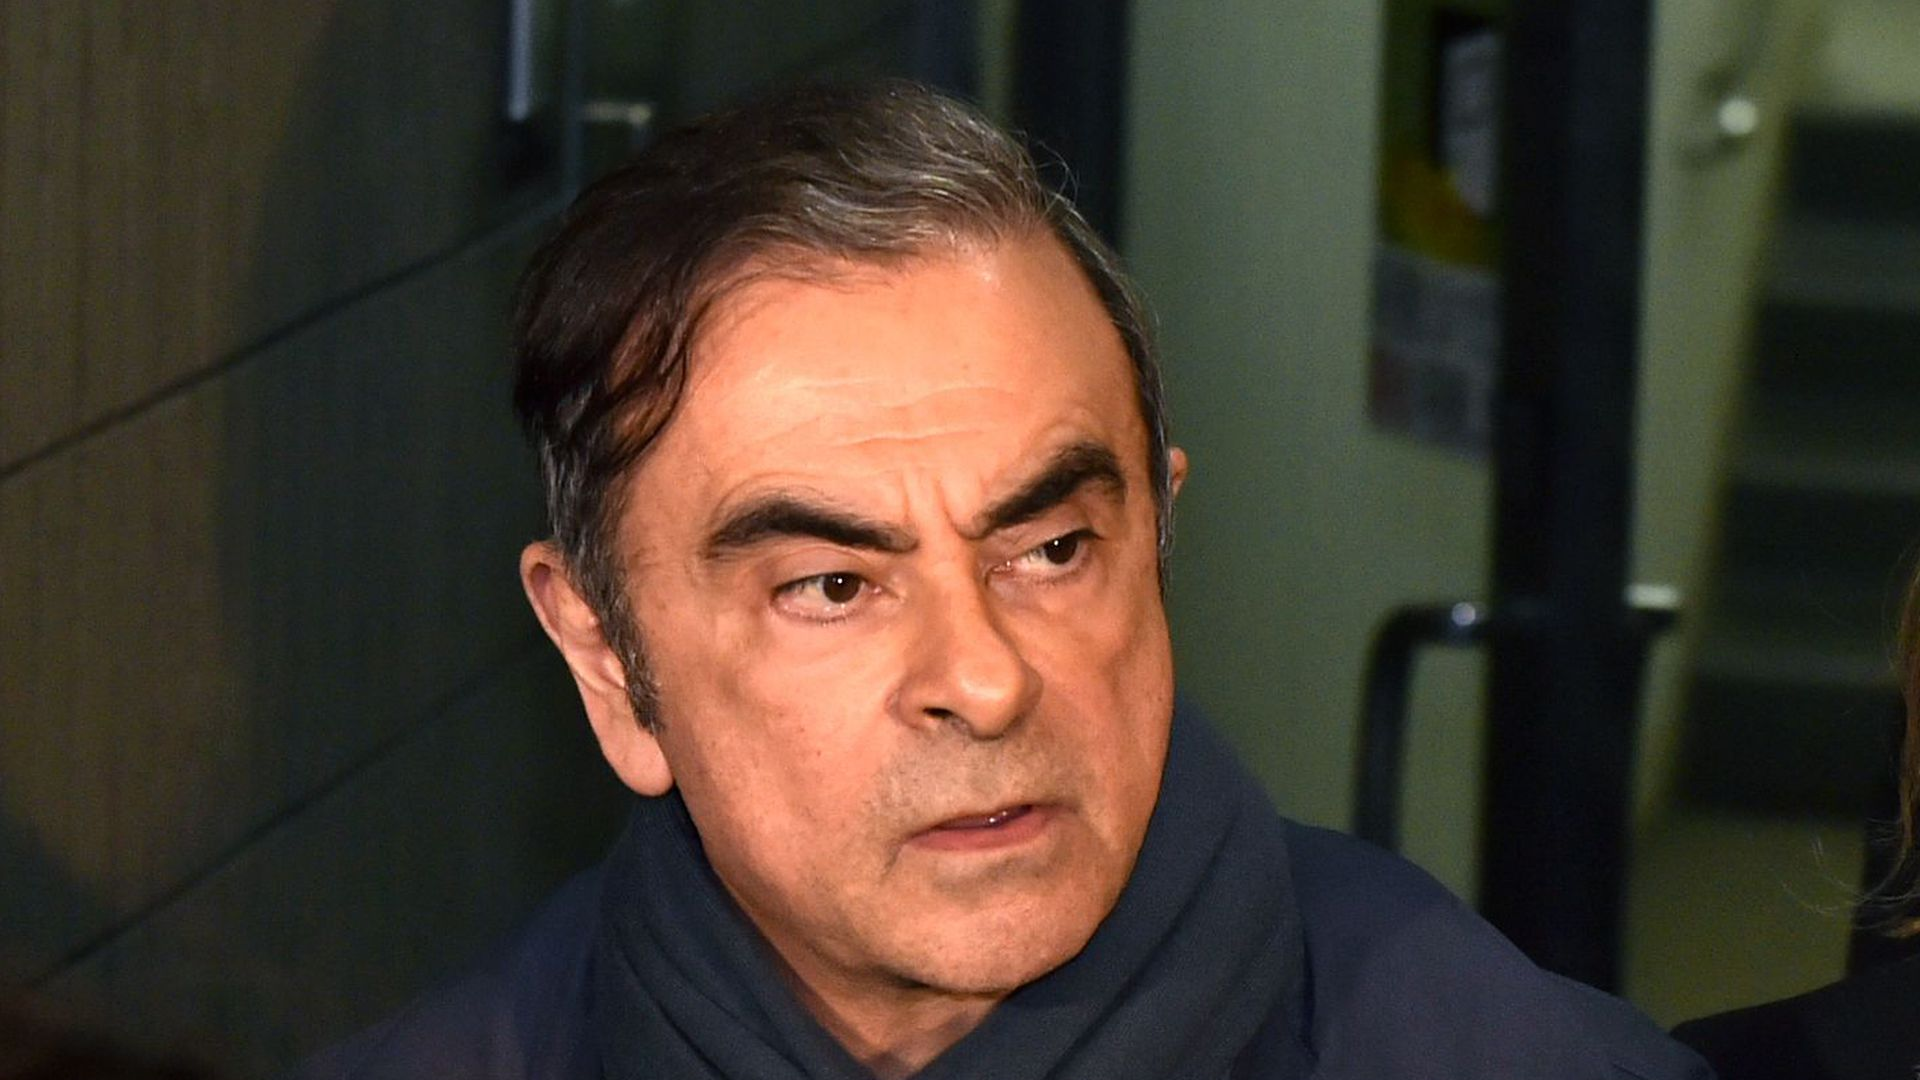 Former Nissan Chairman Carlos Ghosn has been granted bail for a second time.